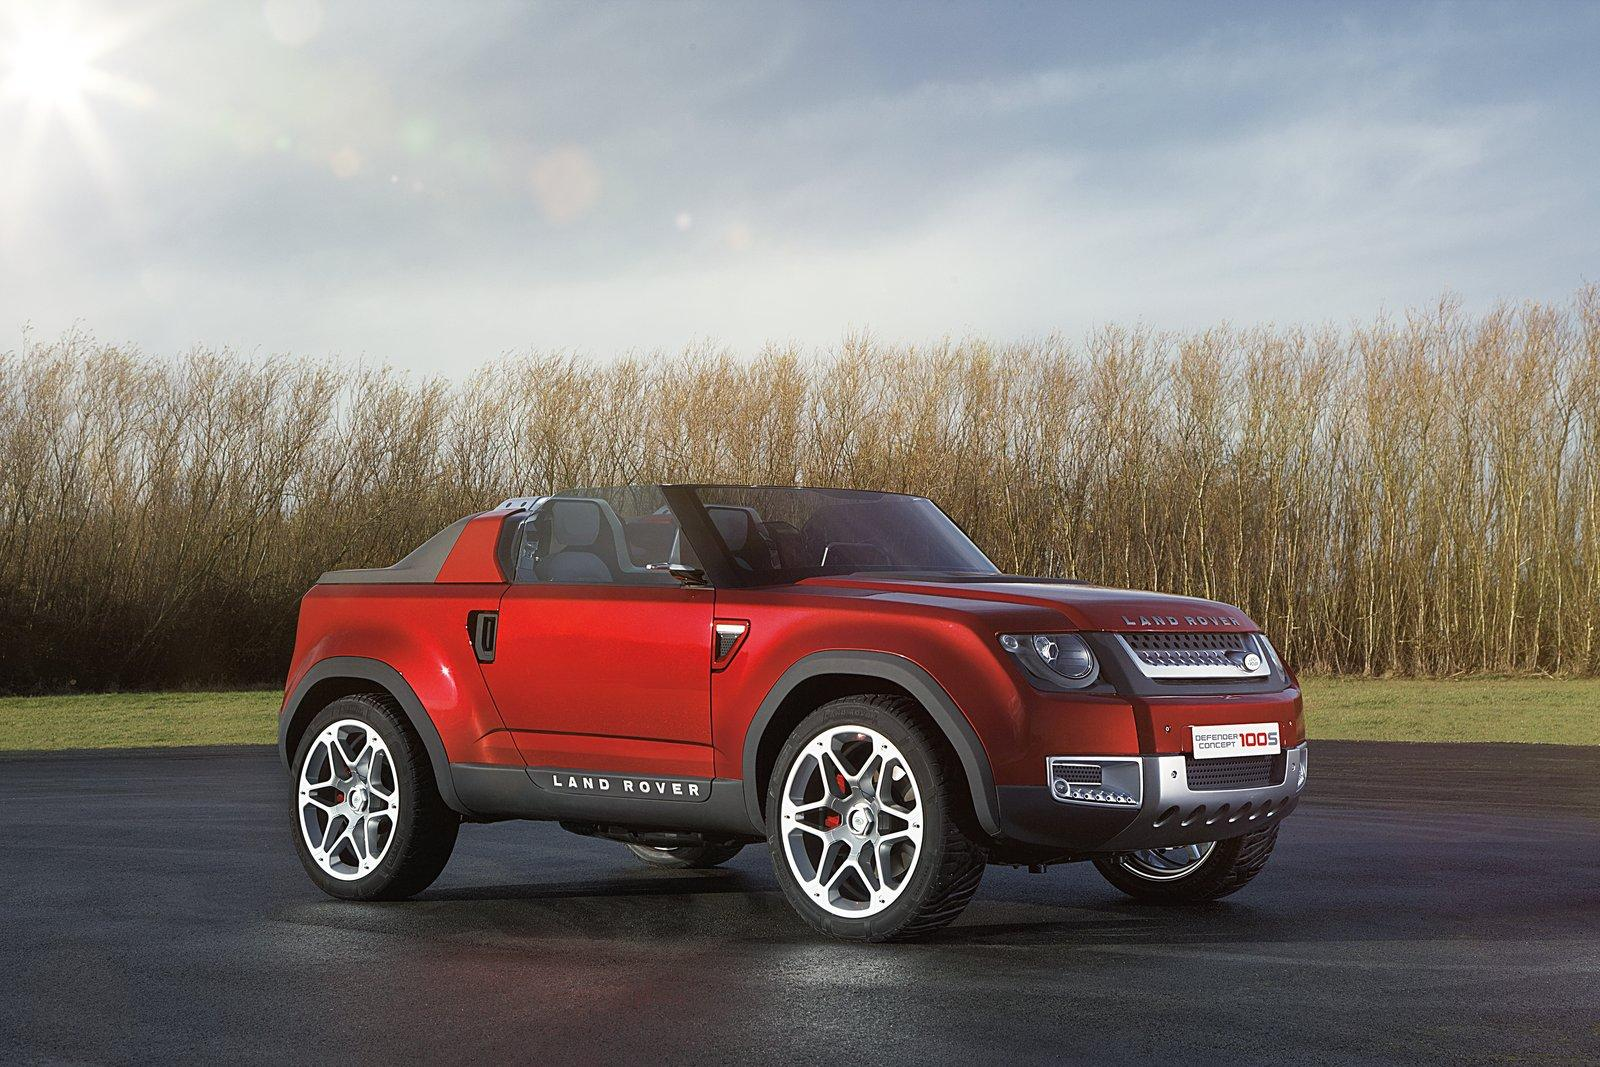 2012 Land Rover DC100 Sport Concept   Top Speed